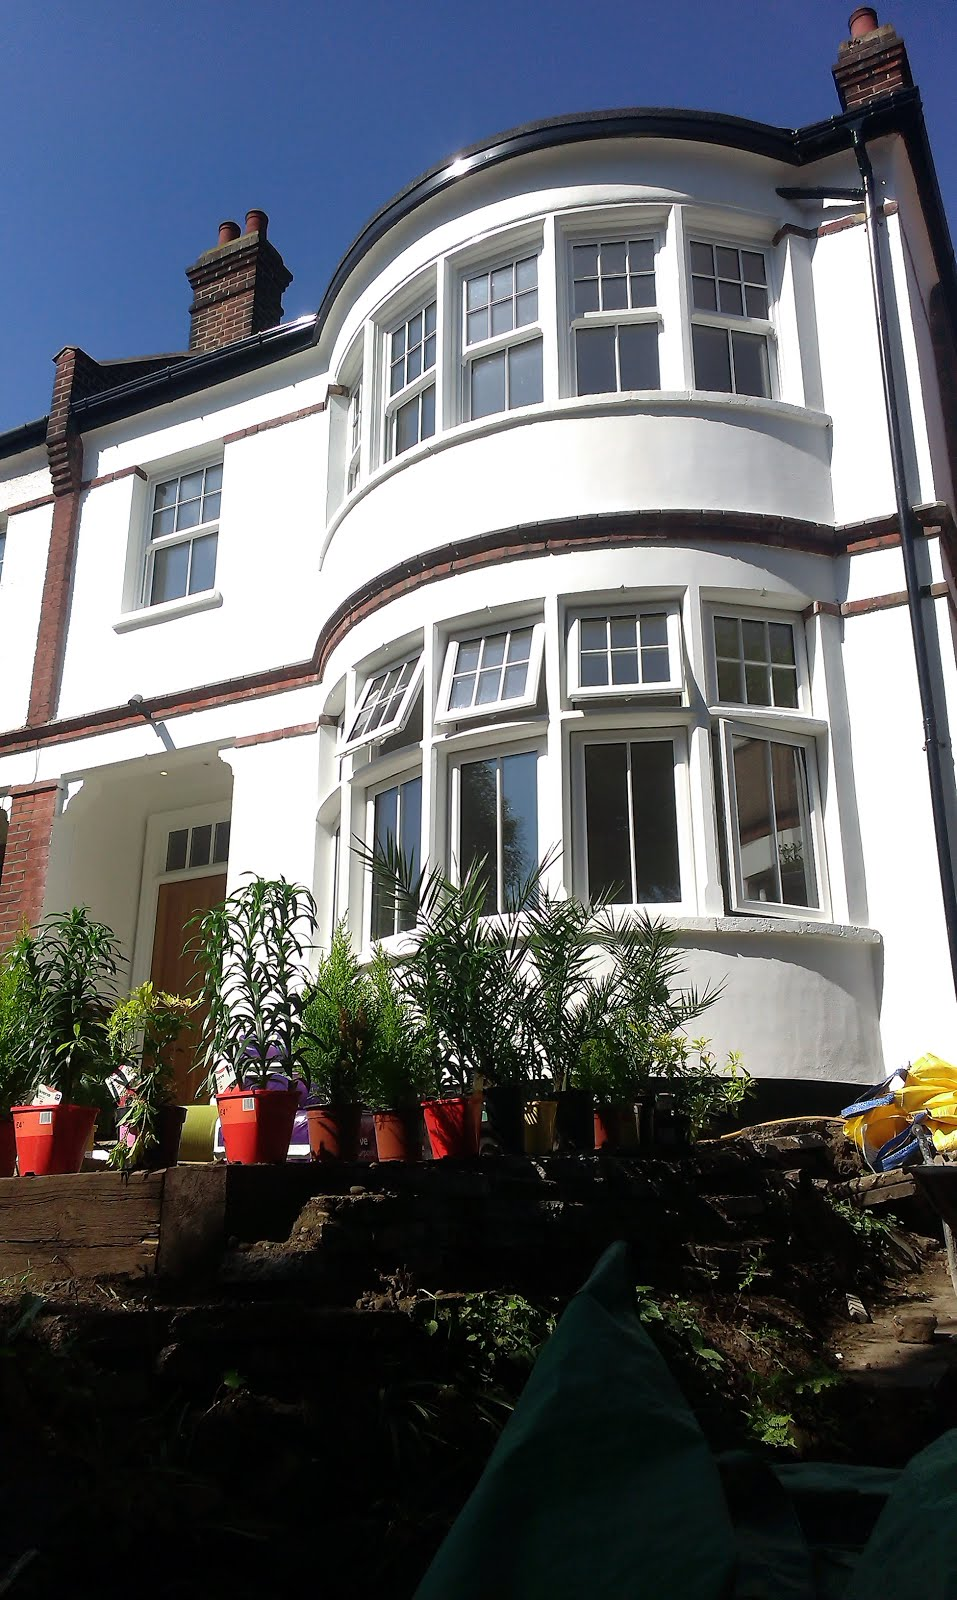 Eltham: Residents of Spencer Gardens Get New life for their home